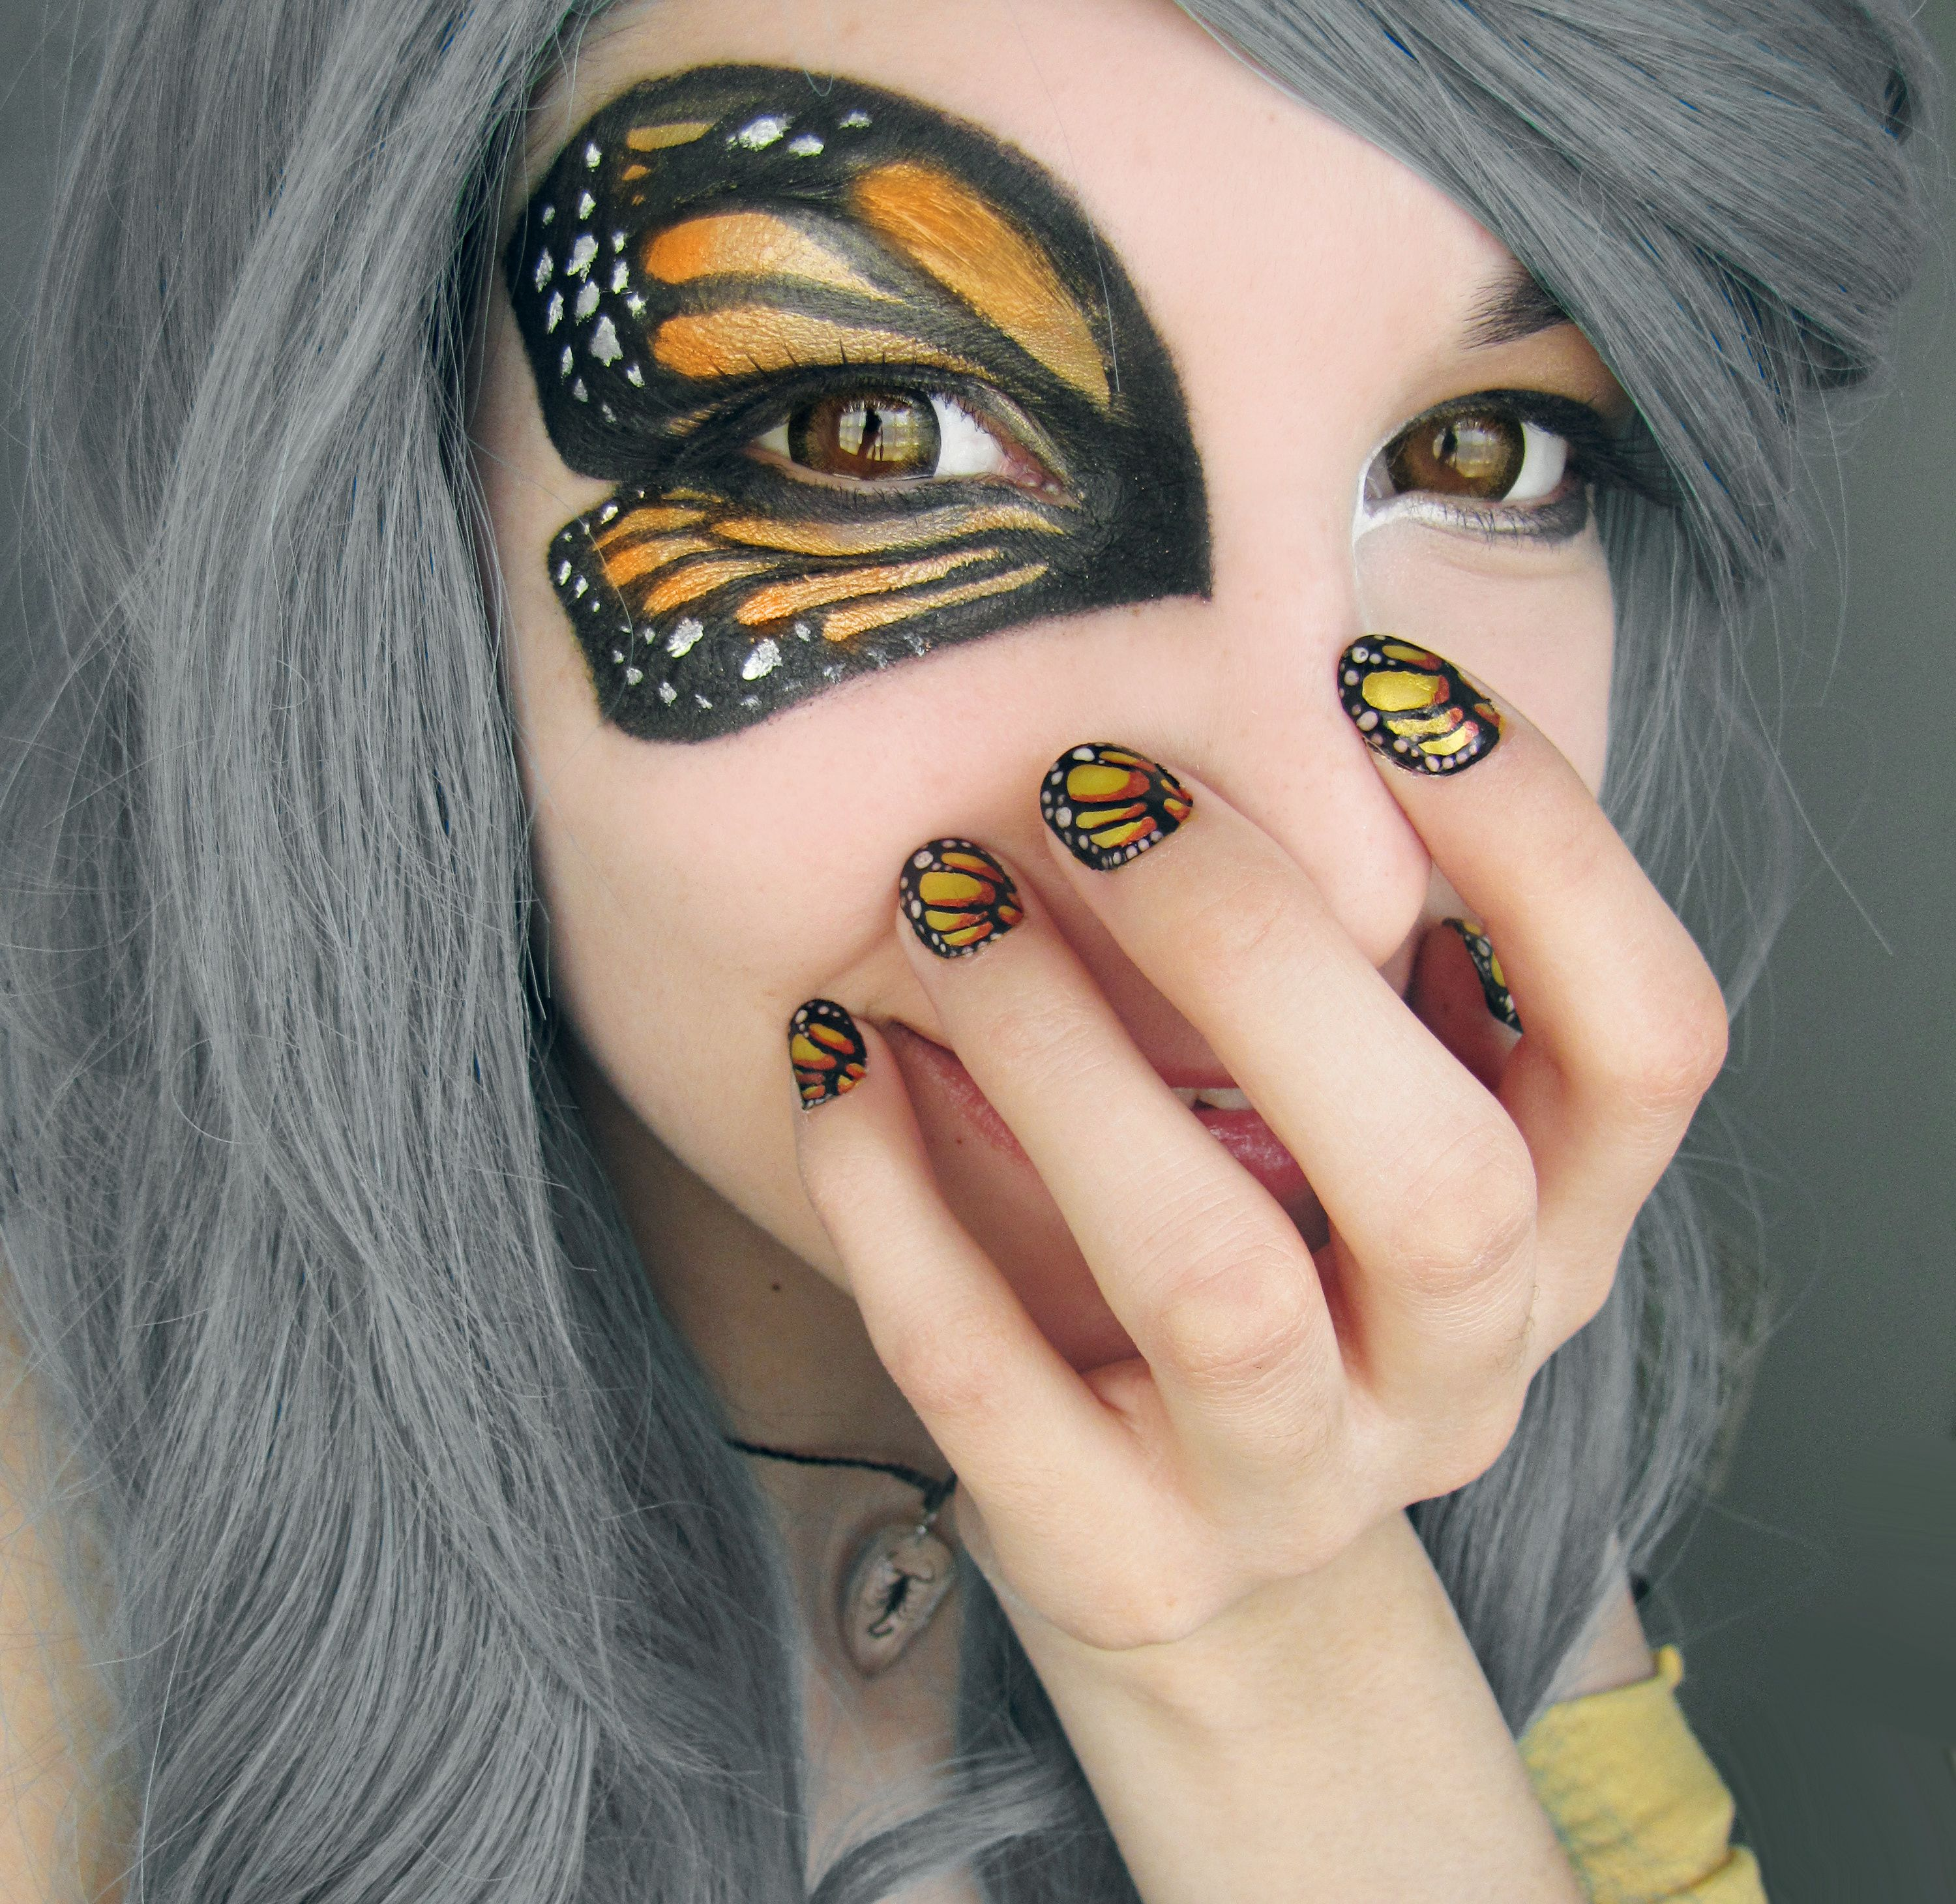 Butterfly makeup and nails. So doing this! Butterfly